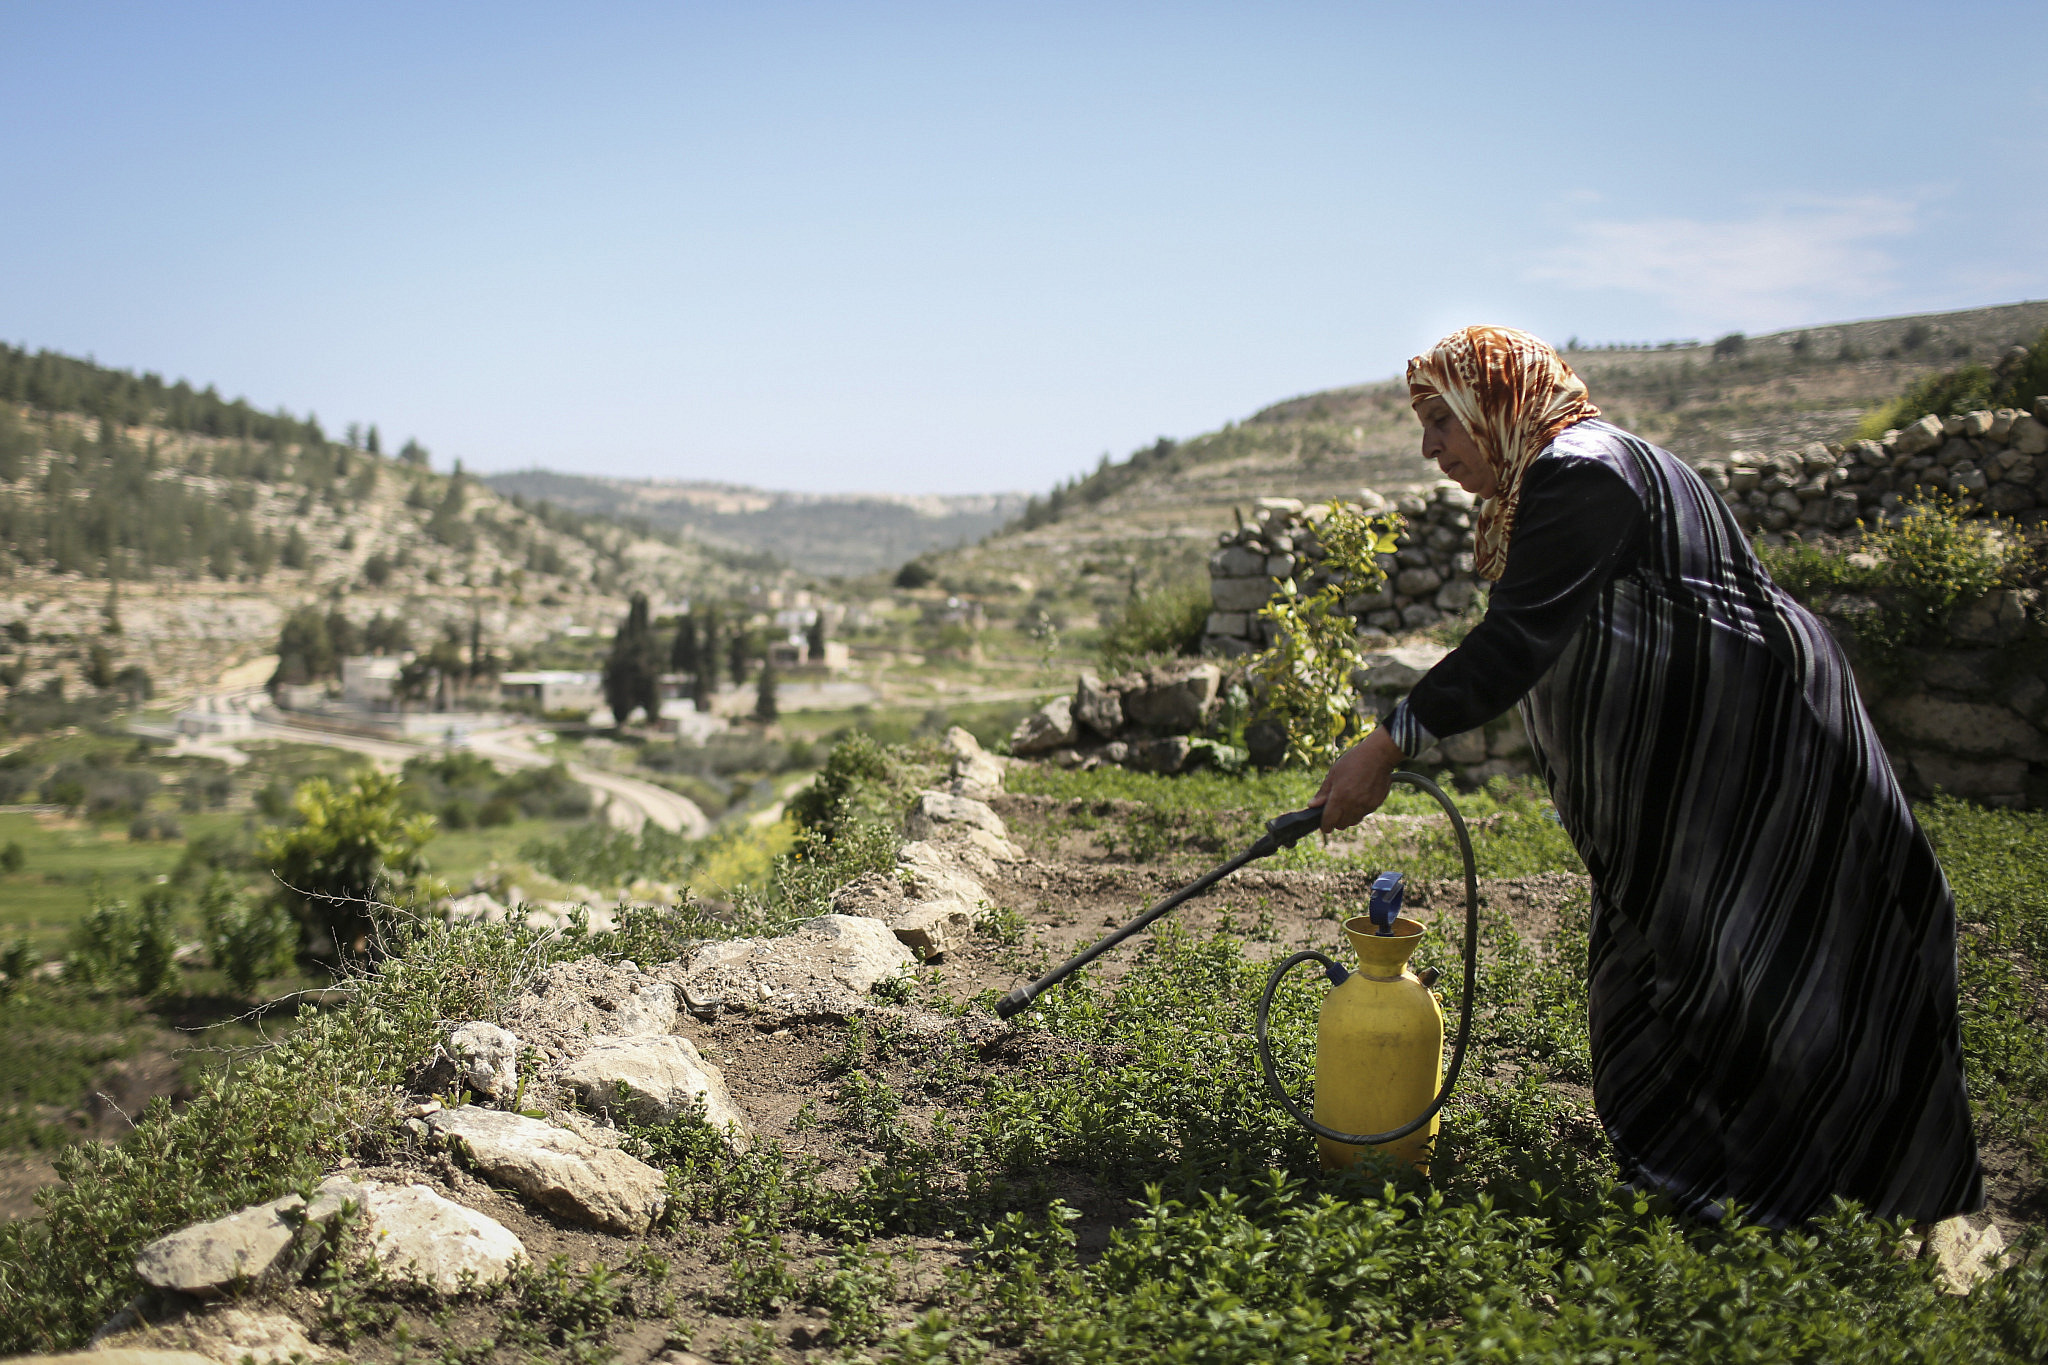 Mariam Bader seen watering her crop on the ancient terraces of the Palestinian village of Battir, overlooking the Israel Railway tracks crossing the village farm land, April 7, 2014. (Hadas Parush/Flash 90)